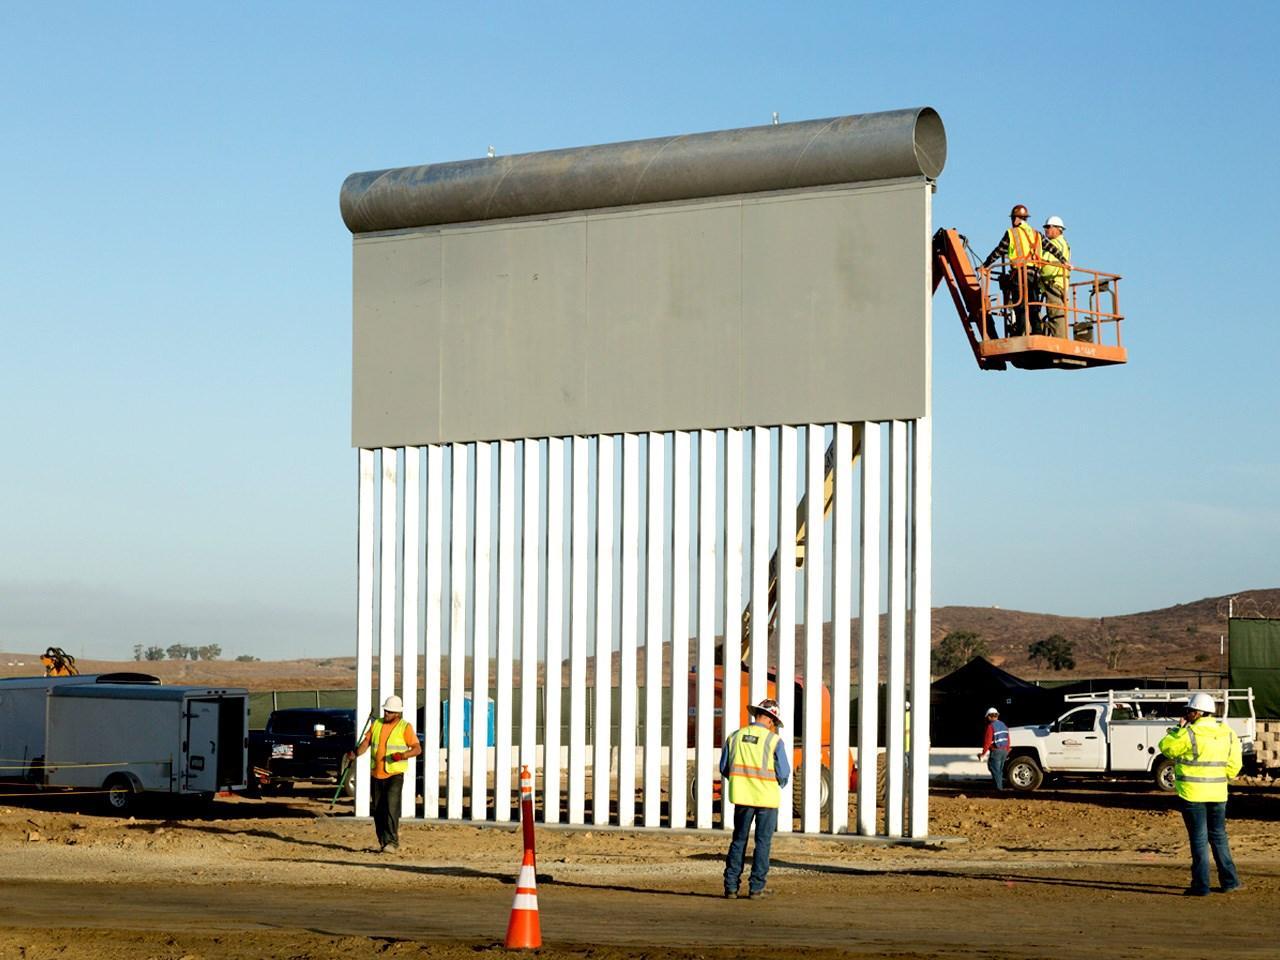 Cards Against Humanity 'saves America' by fighting border wall (Photo: MGN)